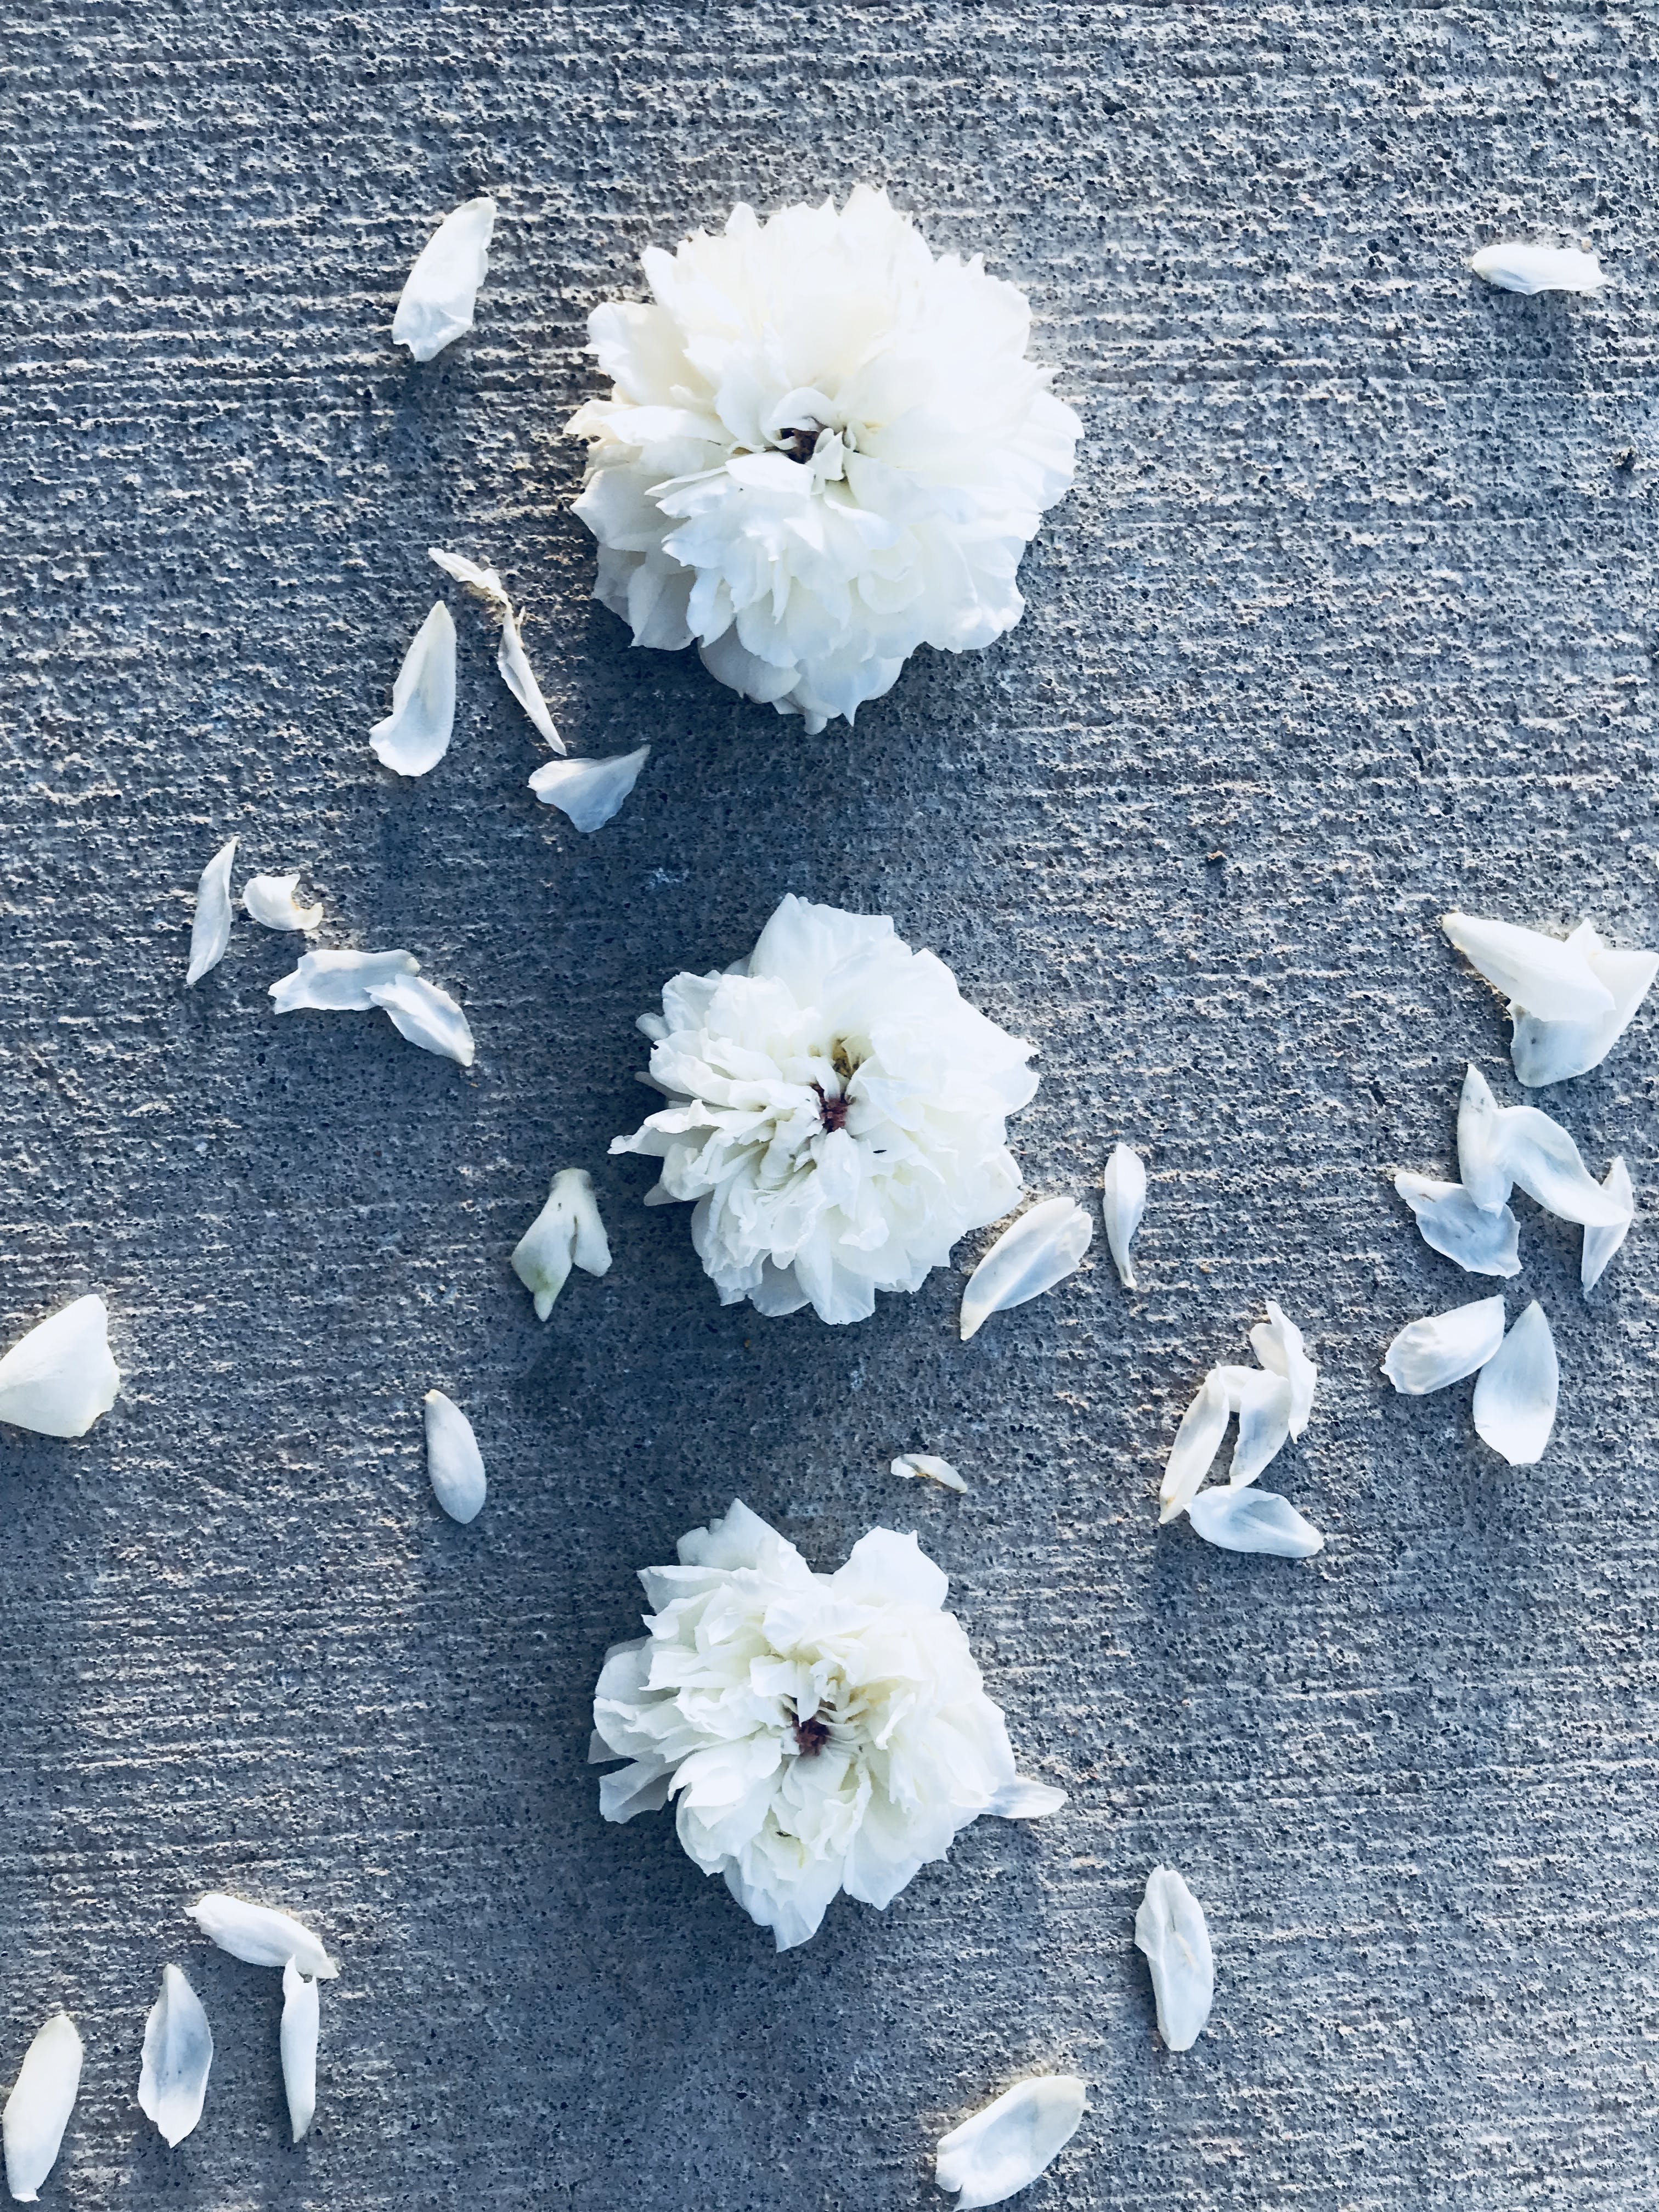 Three White Flowers With Petals